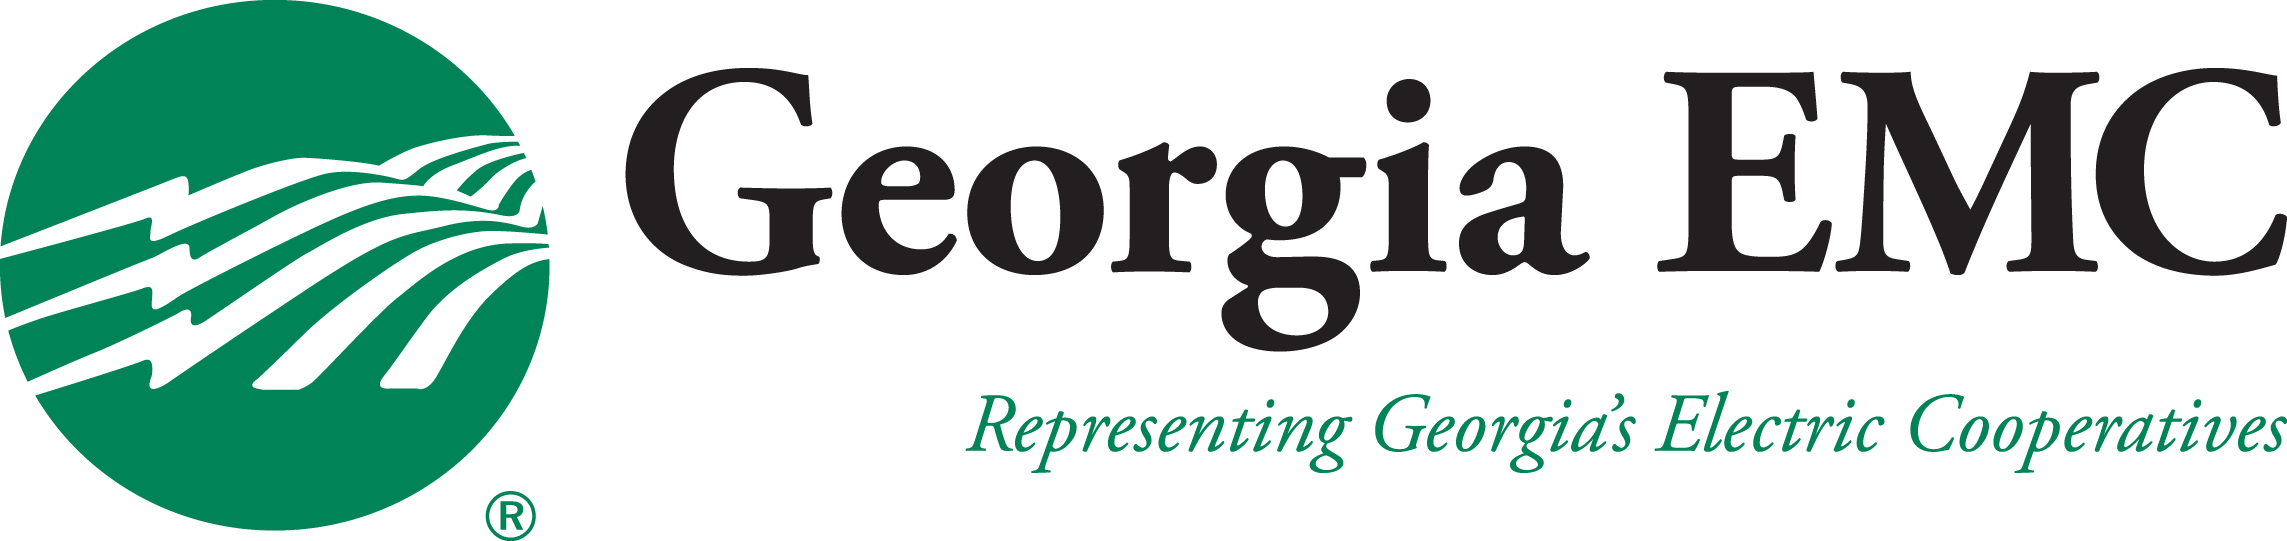 Georgia's Electric Membership Cooperatives